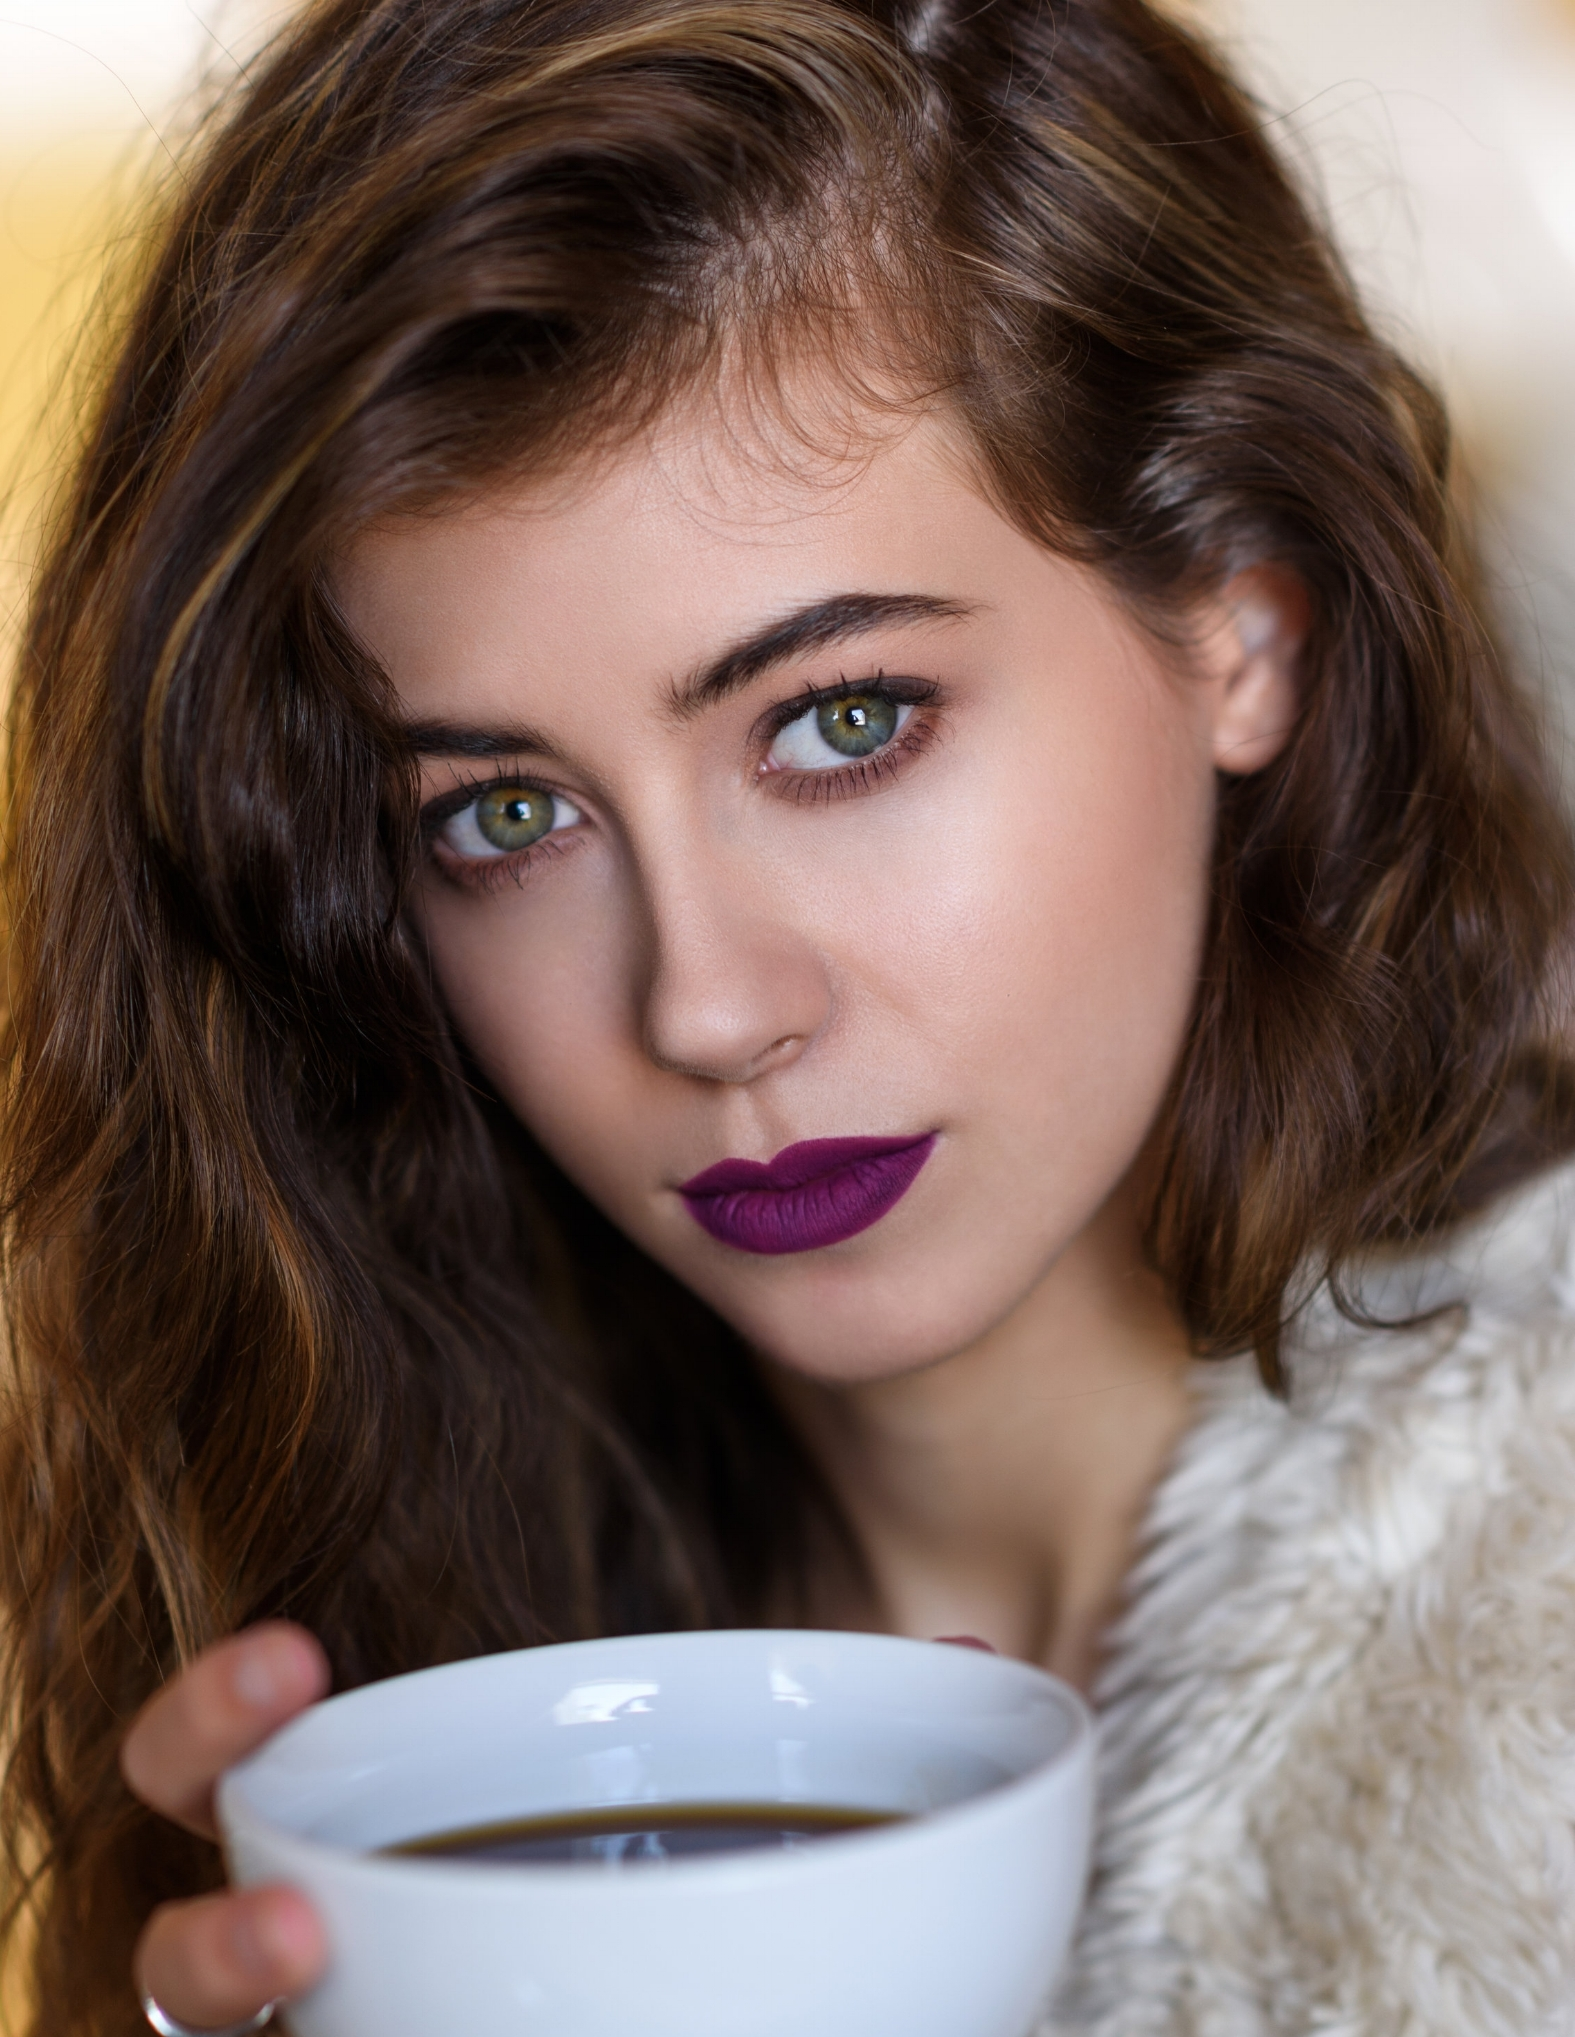 Put your pout front and center with a deep, dark, bold lip. Anywhere from a dense, moody berry to a profound purple, this lip is dark! Balance the statement lip with a soft brow and subtle eye.